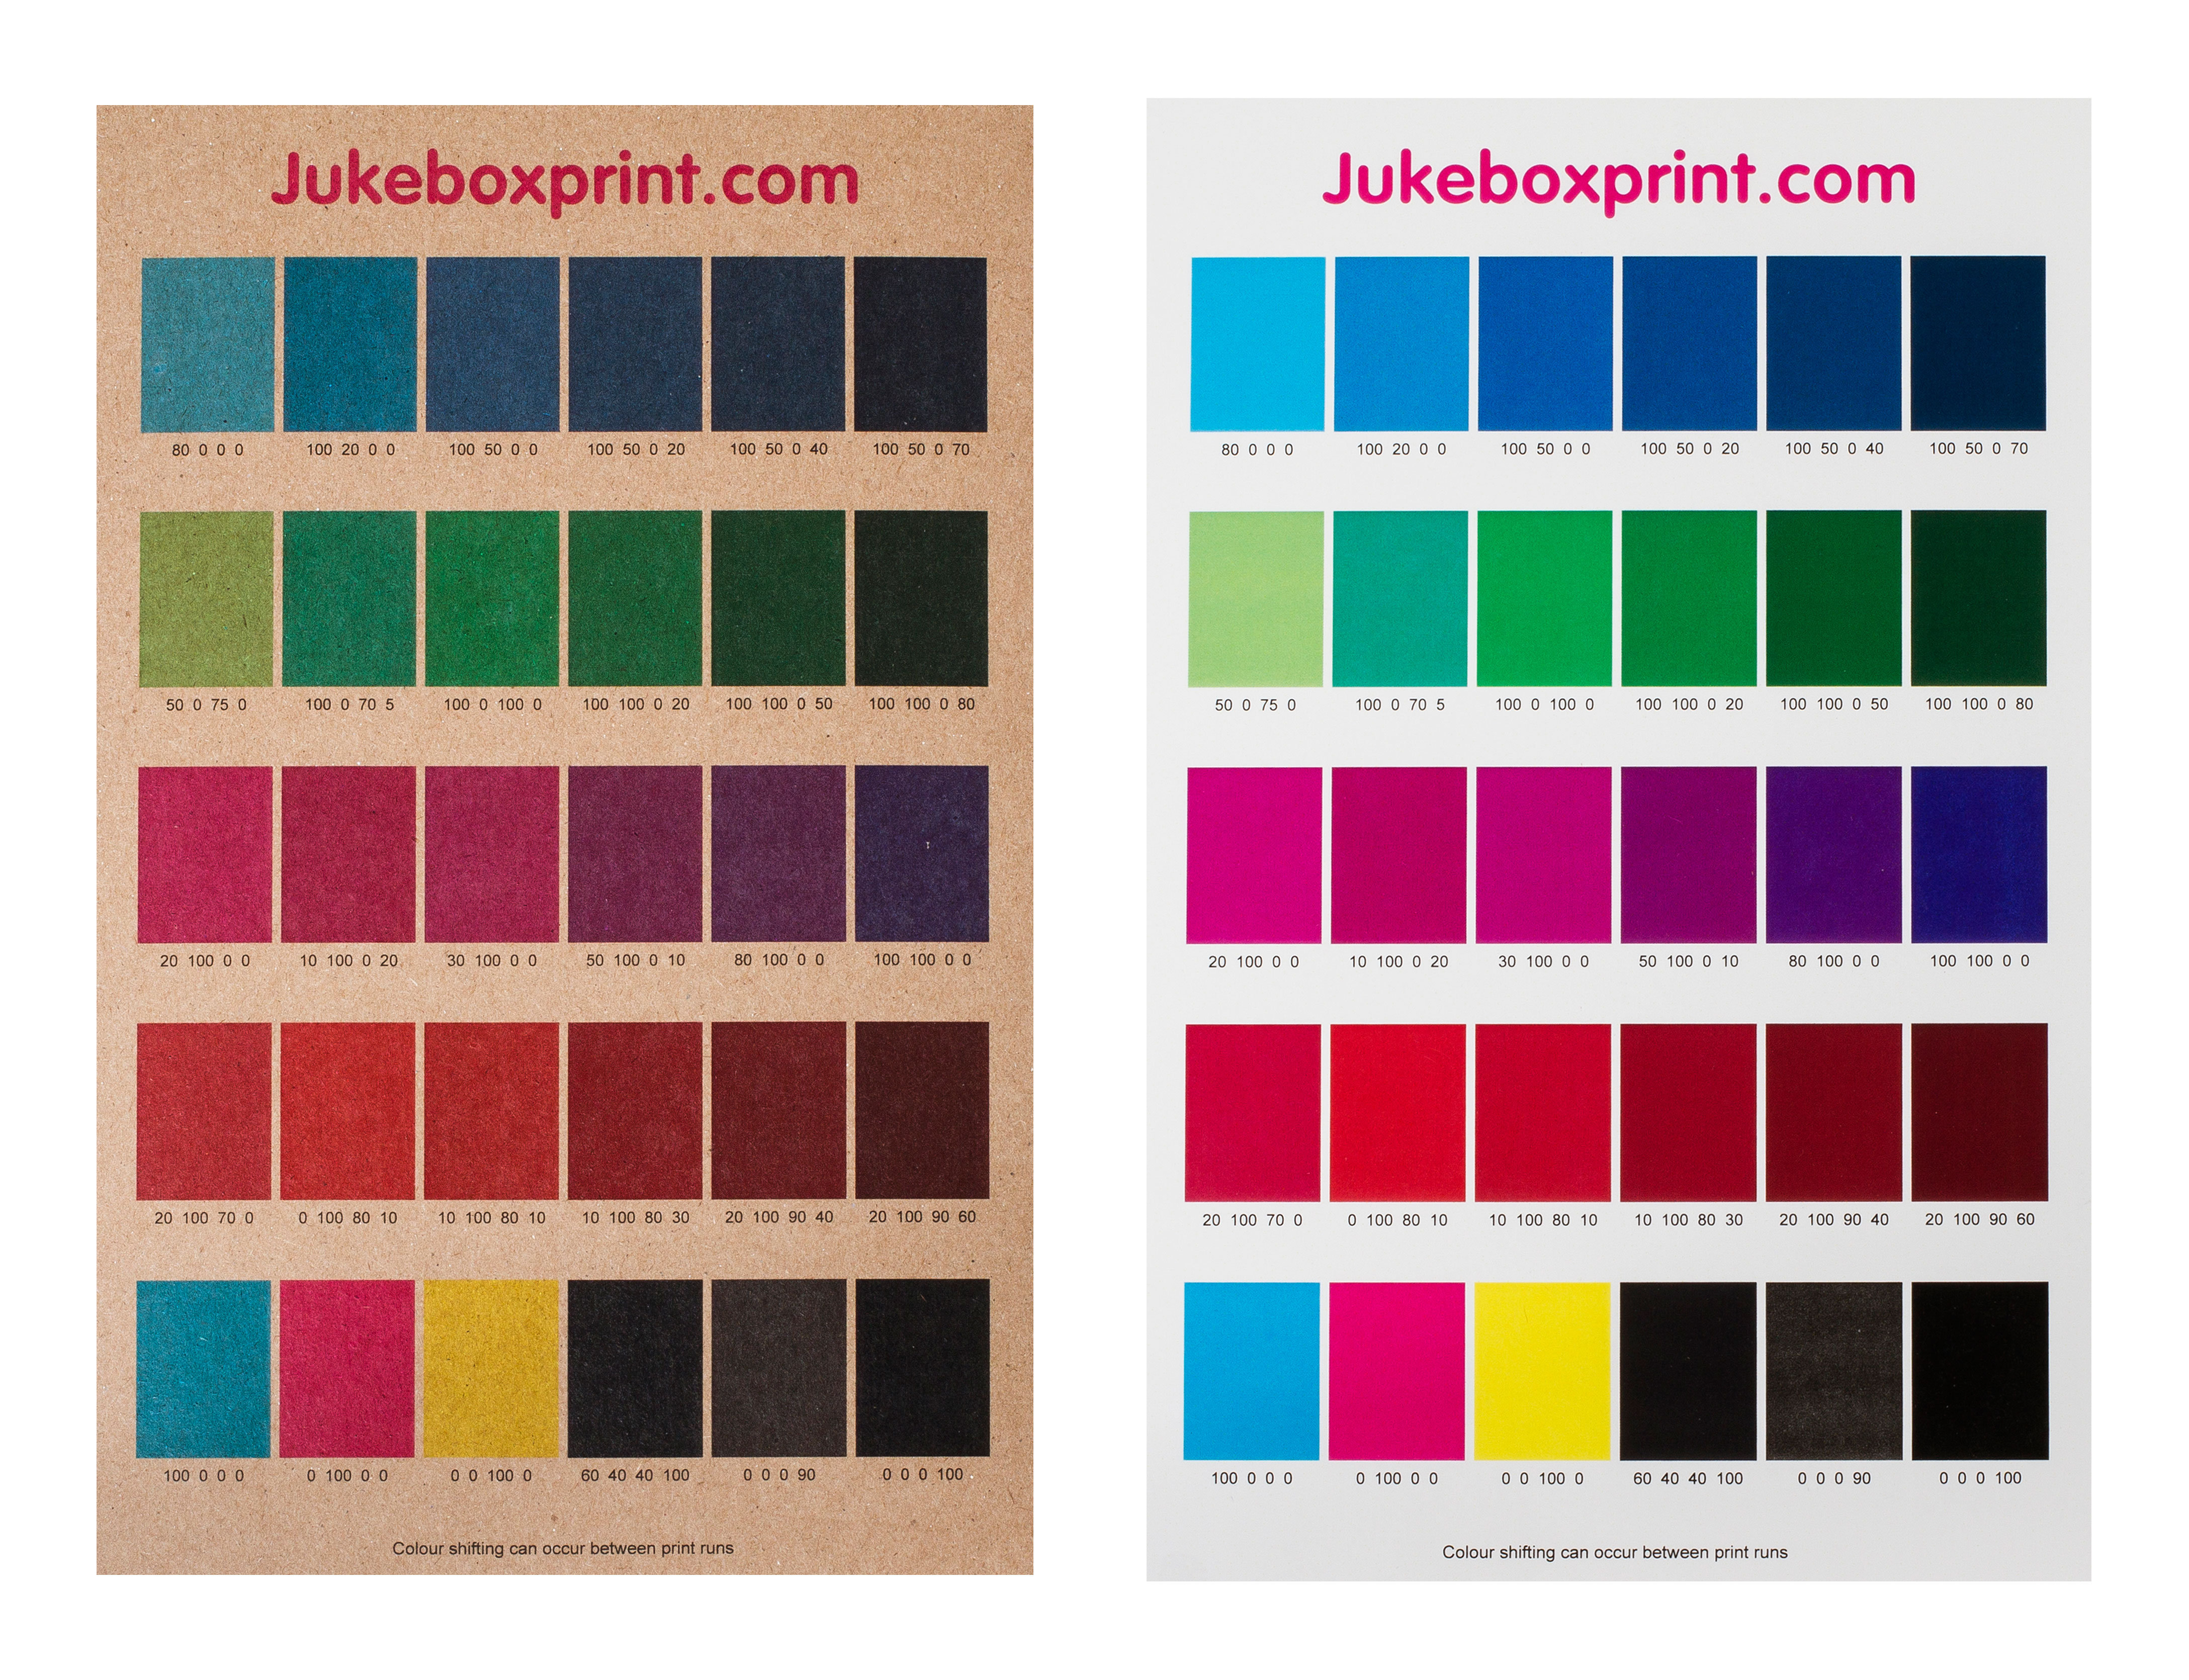 Colourcharts-side-by-side.jpeg